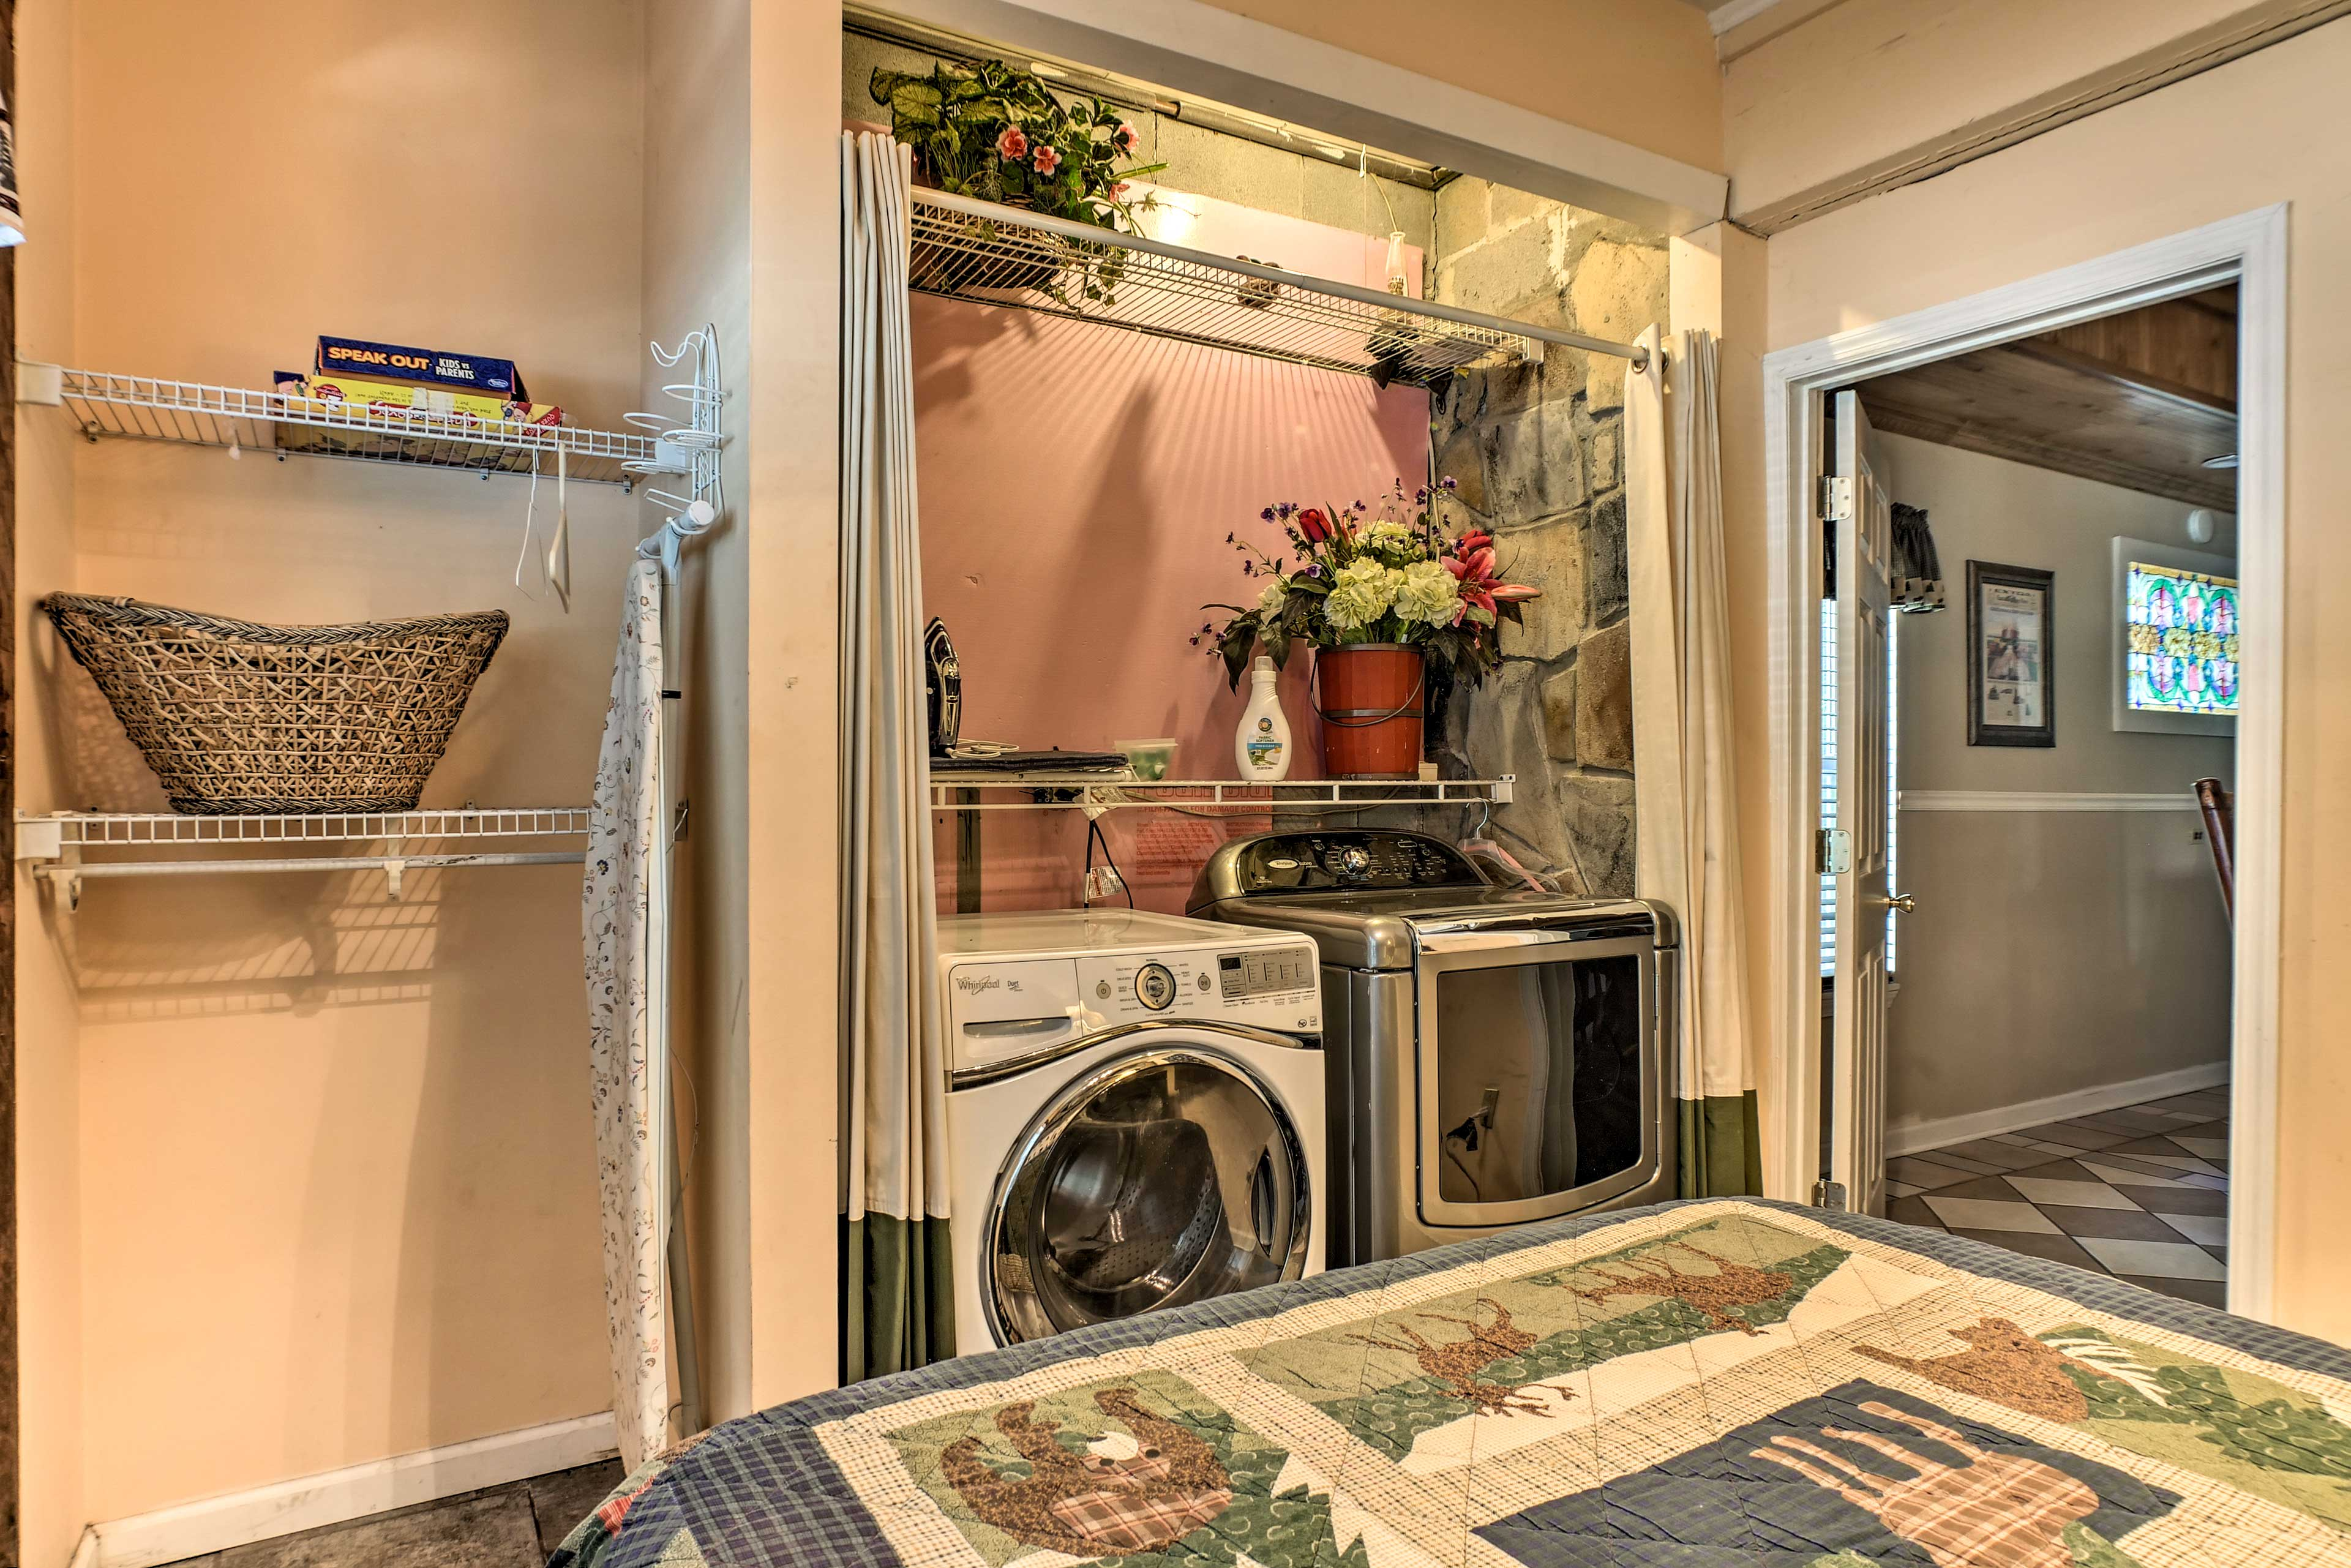 This bedroom also hosts the laundry machines.